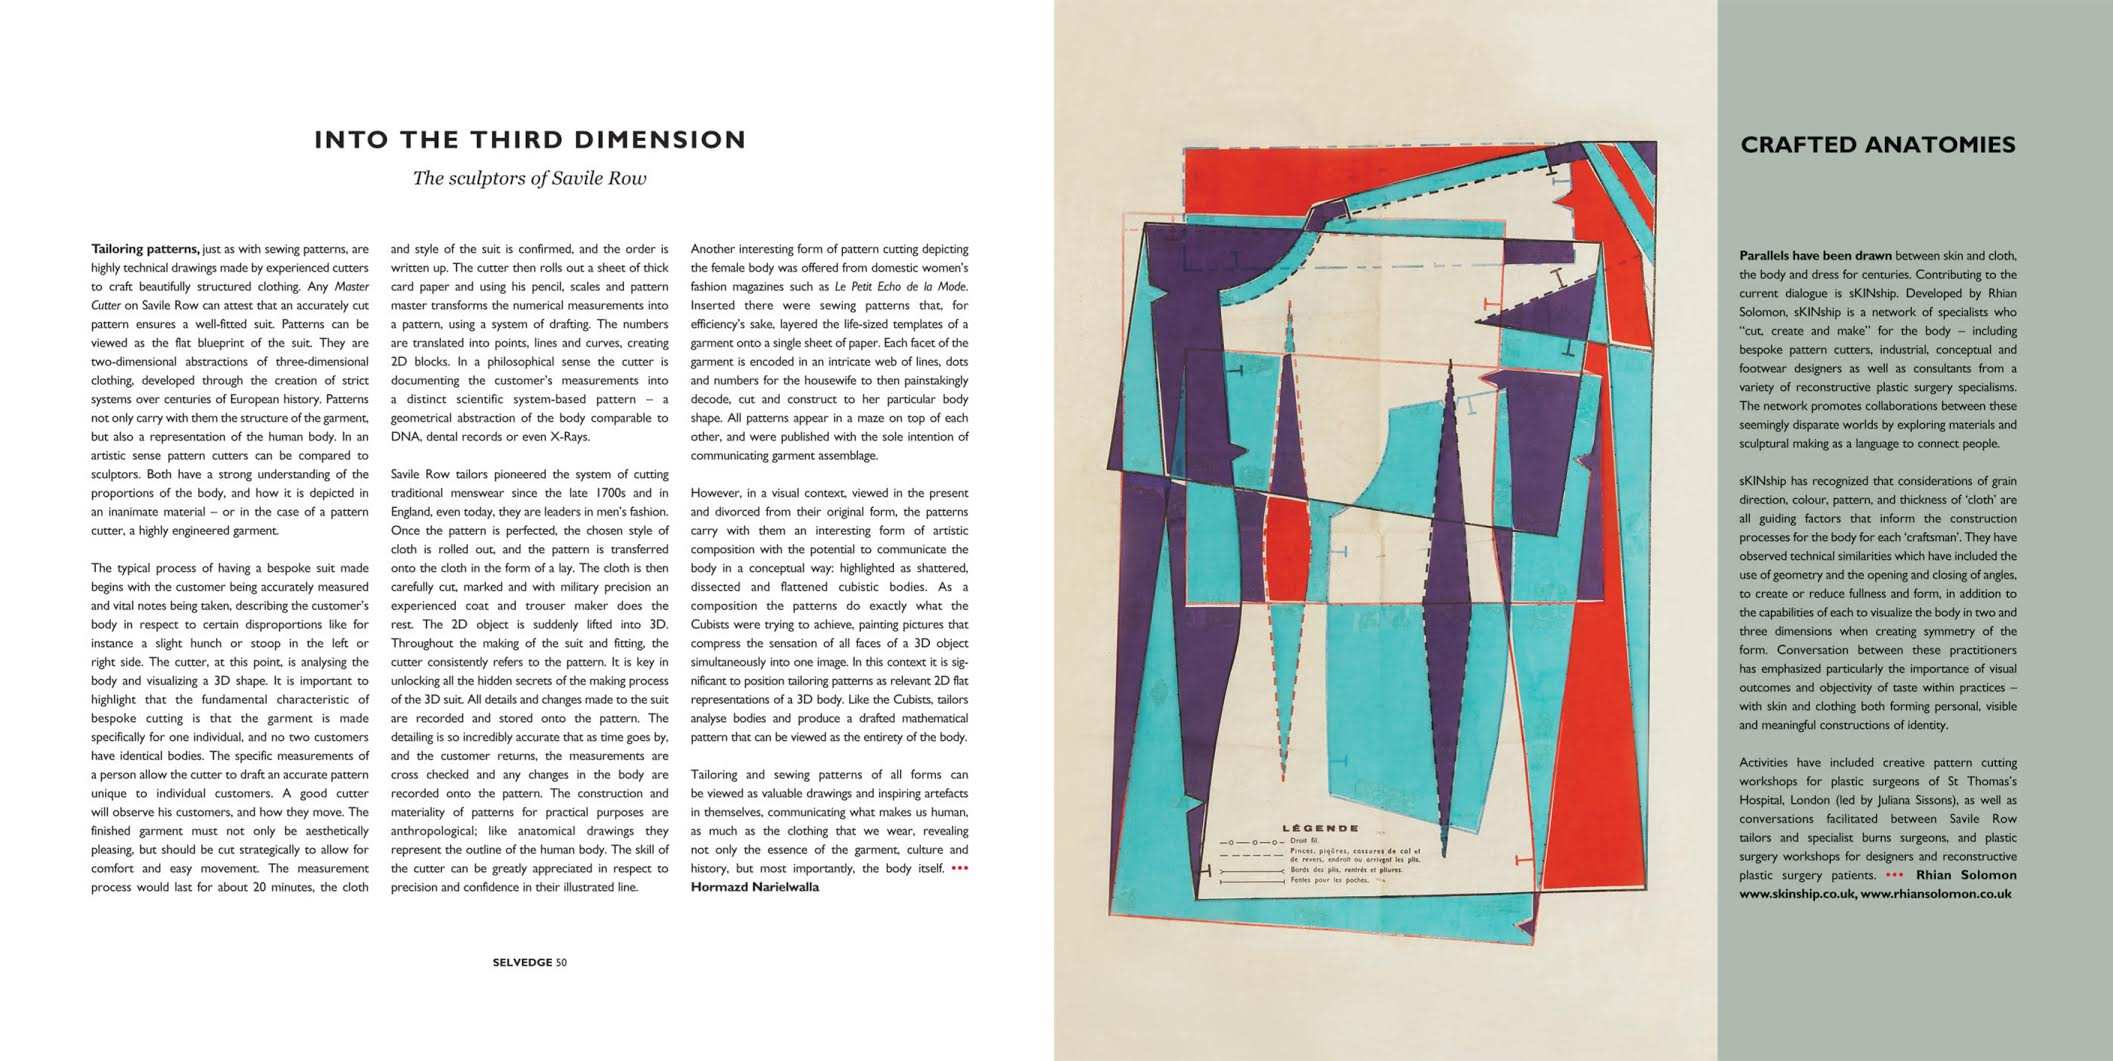 artist hormazd narielwalla on the life and nature of tailoring patterns